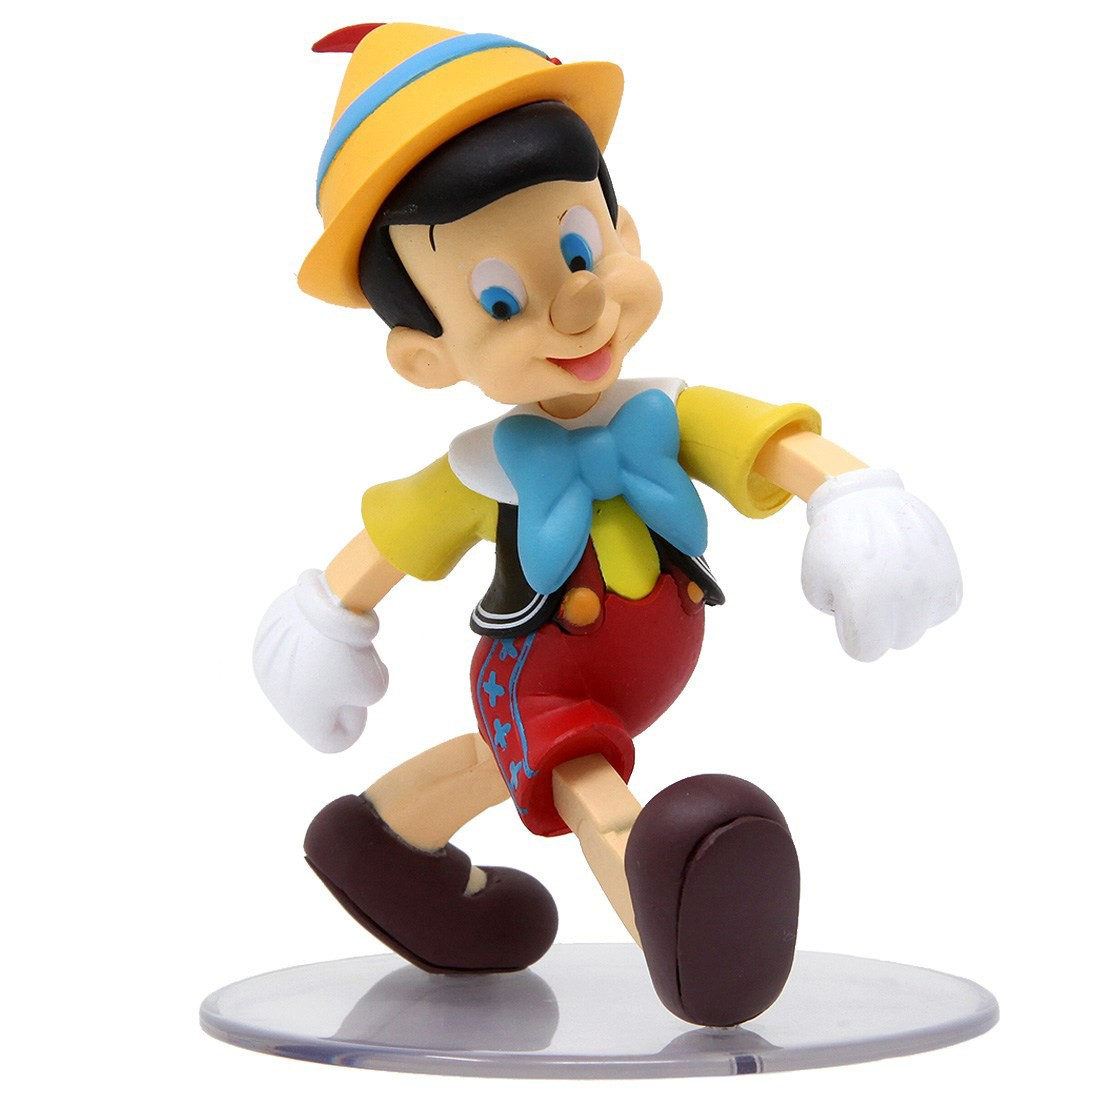 Medicom UDF Disney Series Pinocchio - Pinocchio Ultra Detail Figure (yellow)